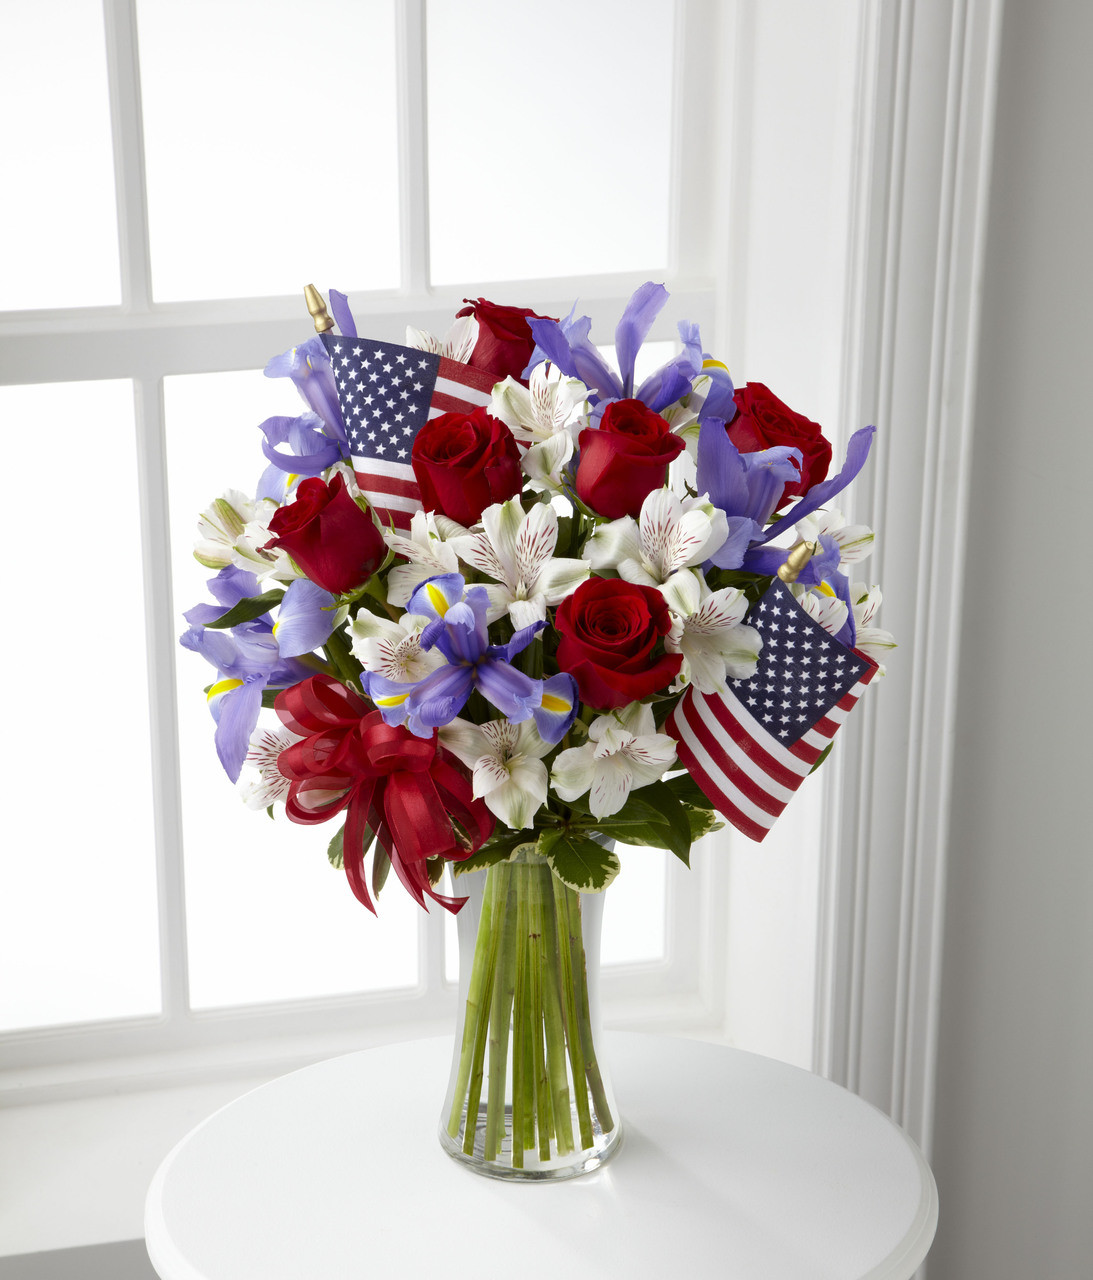 Theunity Bouquet Sparks The Hearts Of All Americans With Its